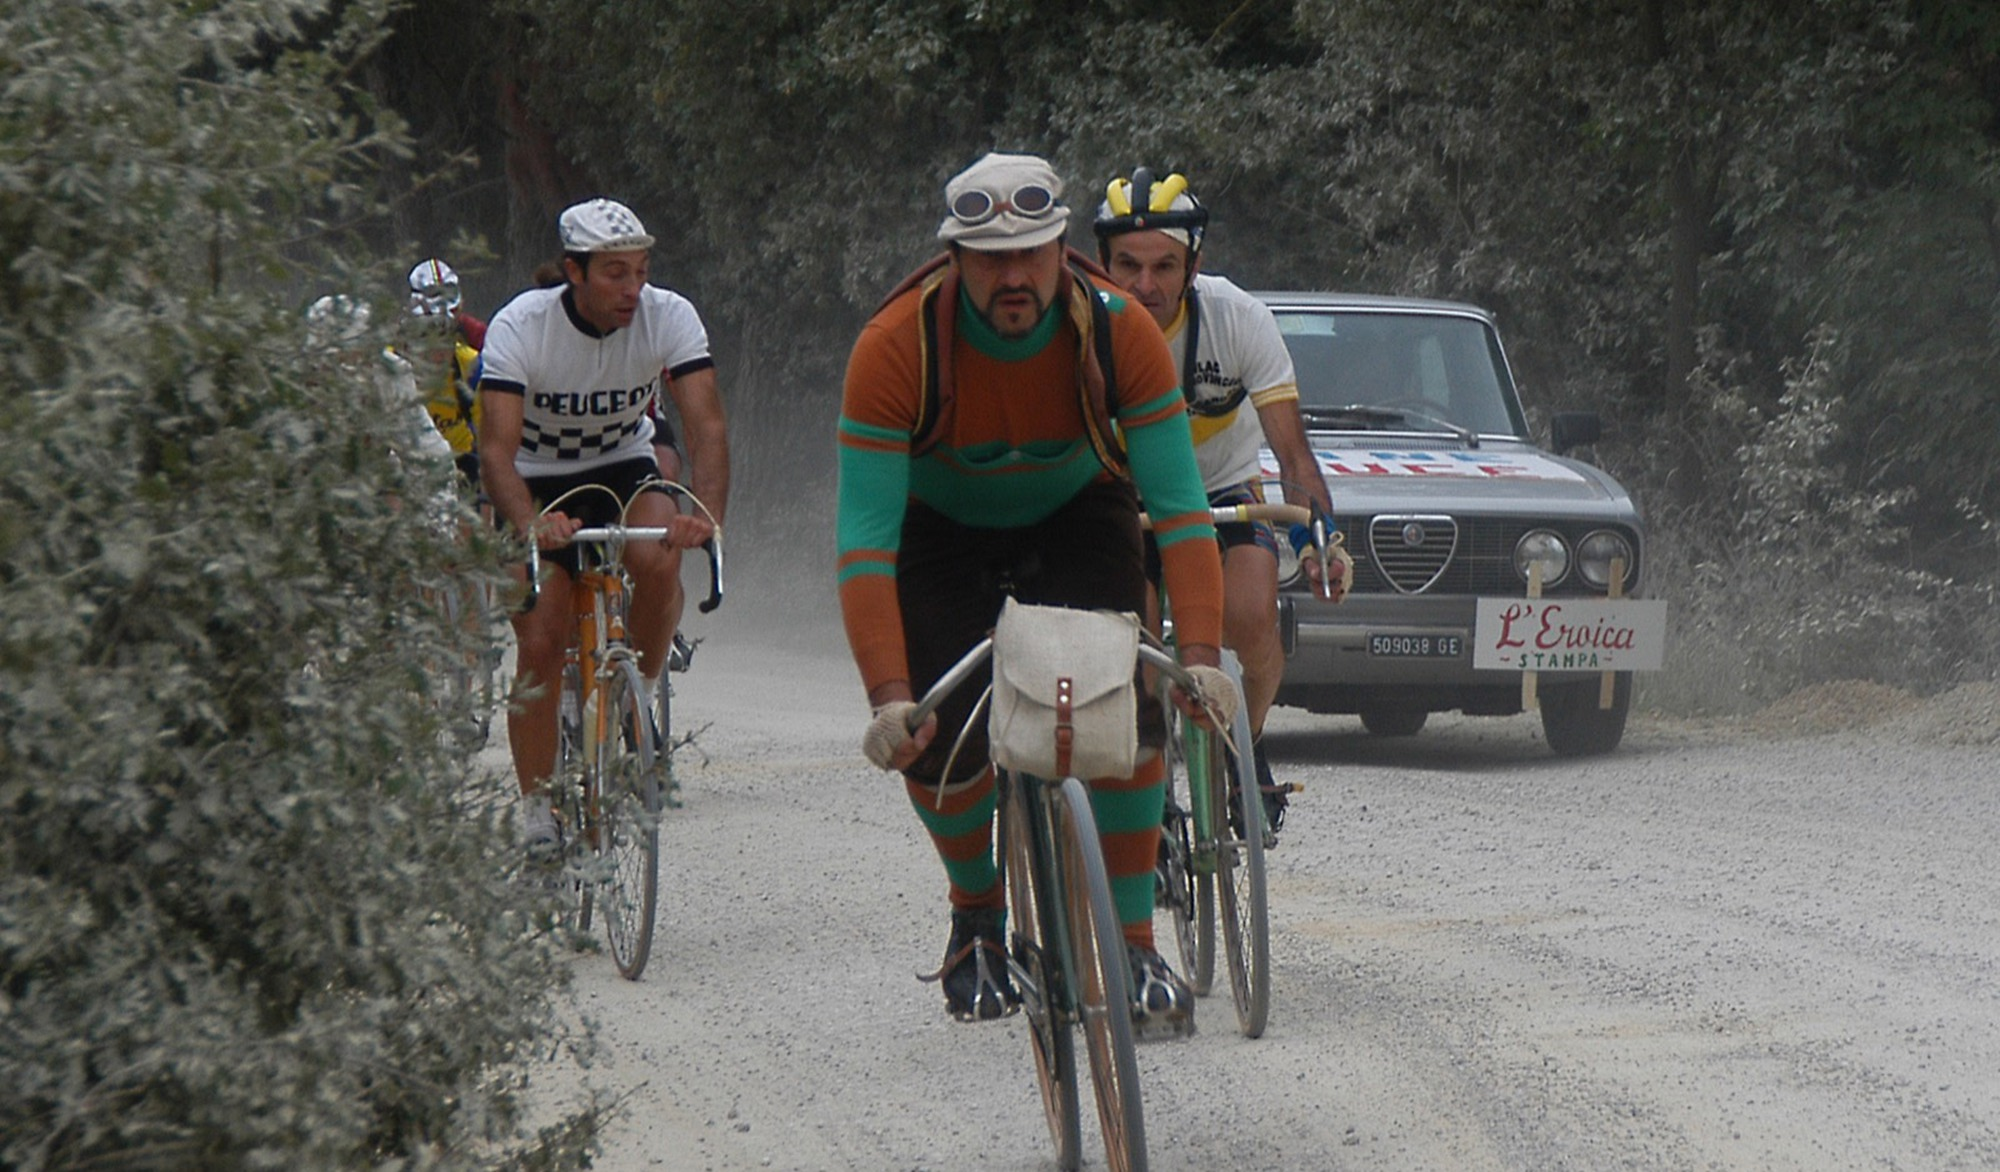 Mike Lawson (BiciSport Master) rode the Eroica Challenge Cyclosportive in Siena Italy on 10 March with 5,000 starters & Mike finished 5th in his age category. A full Eroica & Milan San Remo ride report will appear in  BiciSport News  on 18 March